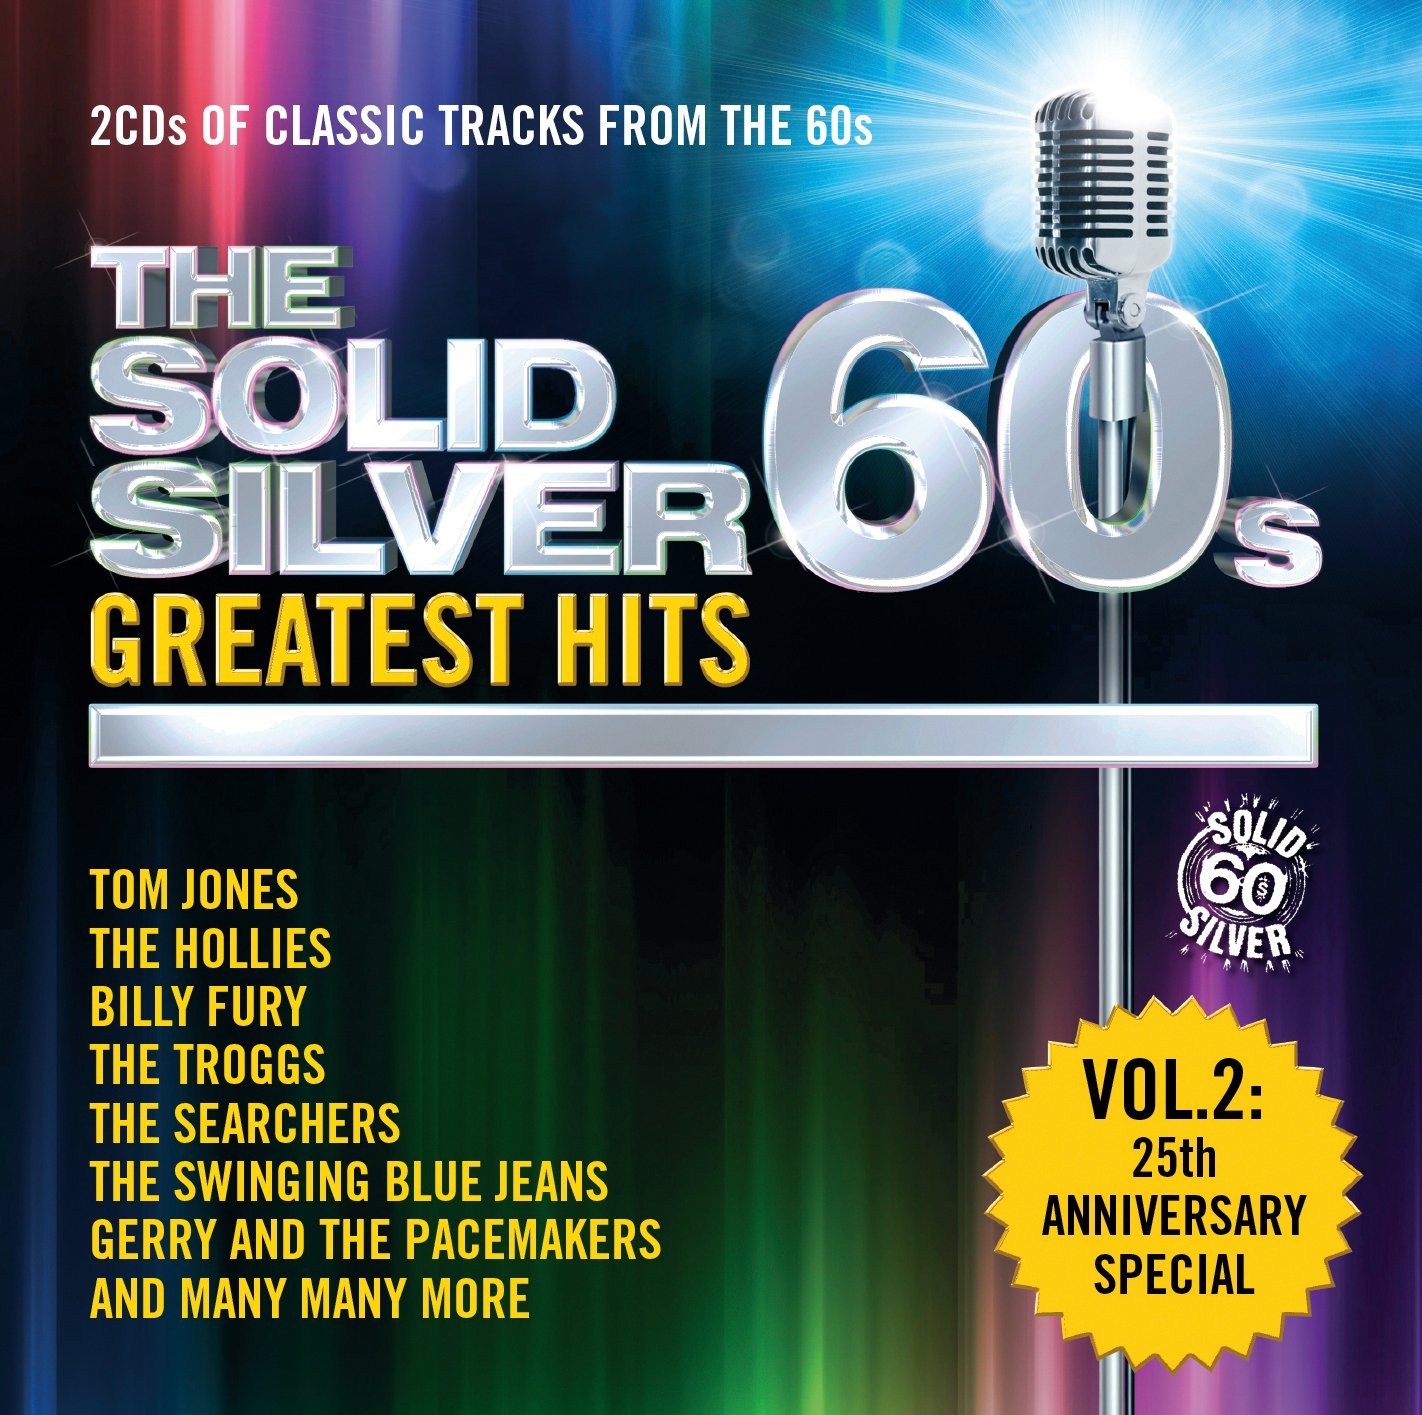 The Solid Silver 60s Greatest Hits Vol 2 Amazoncouk Music